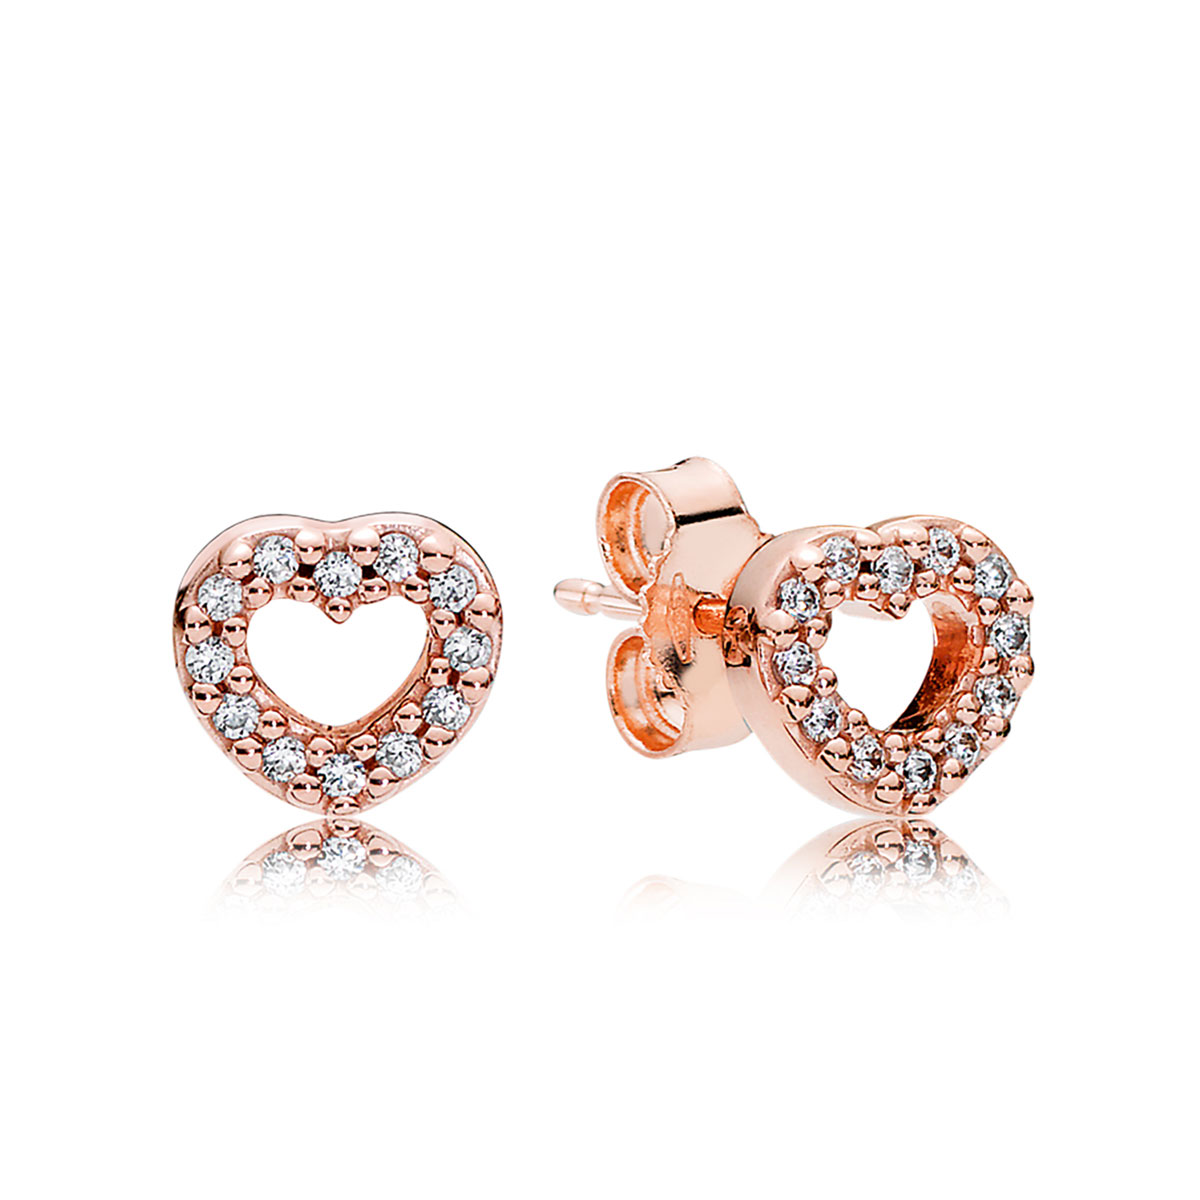 f79b3dfc0 Related Products. <. > PANDORA Rose™ Captured Hearts with Clear CZ Stud  Earrings